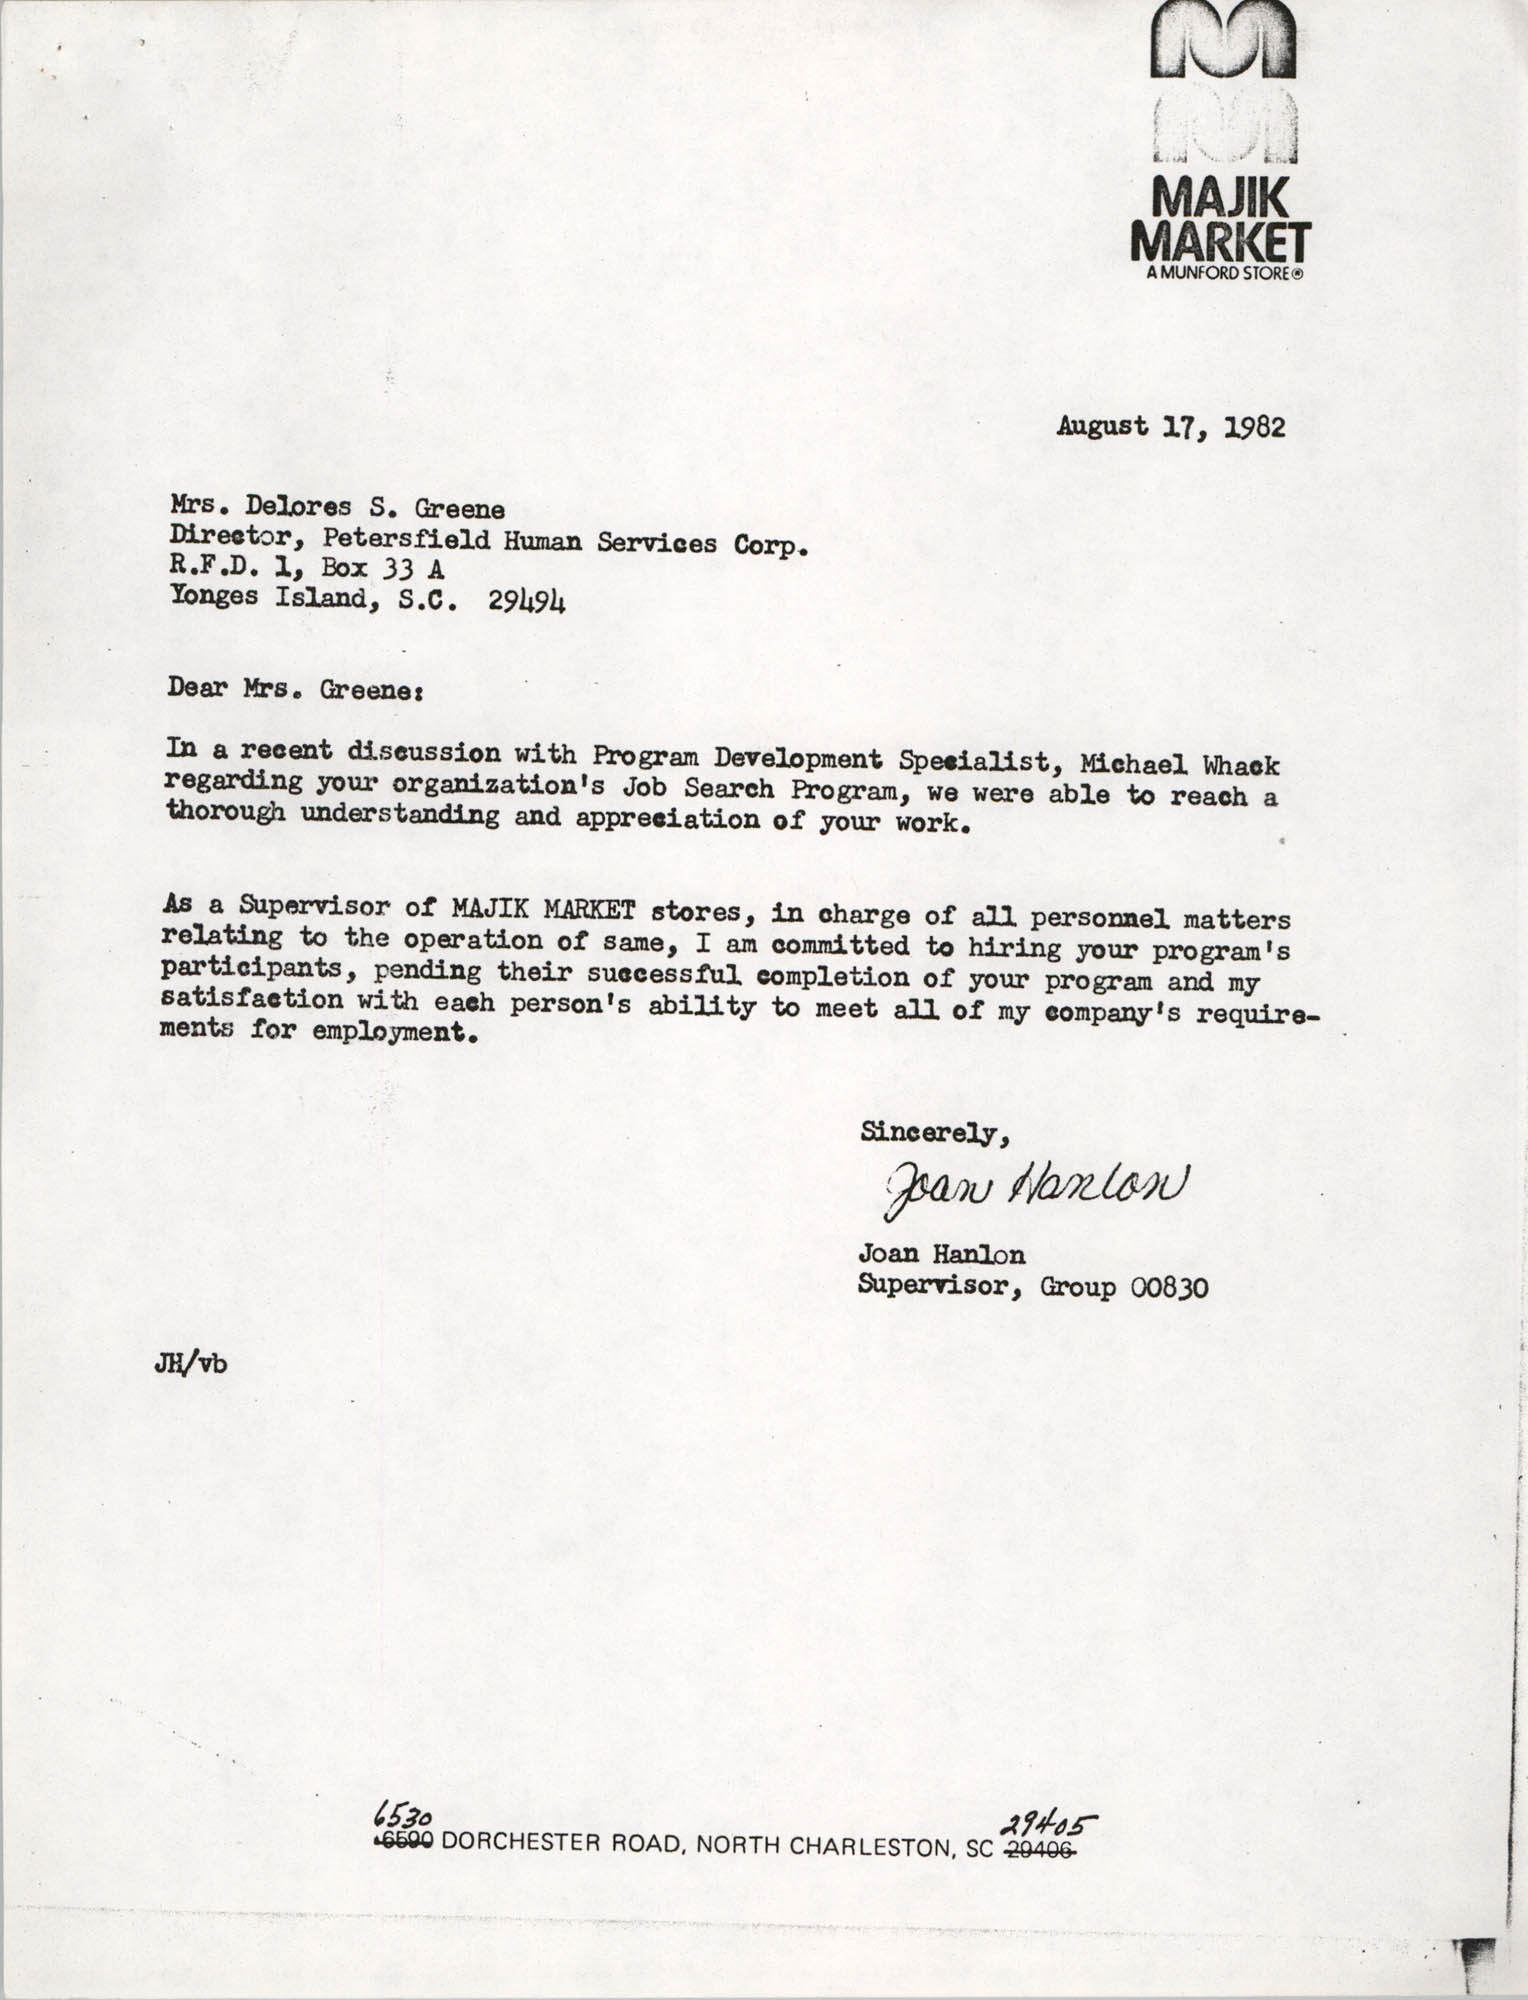 Letter from Joan Hanlon to Delores S. Greene, August 17, 1982